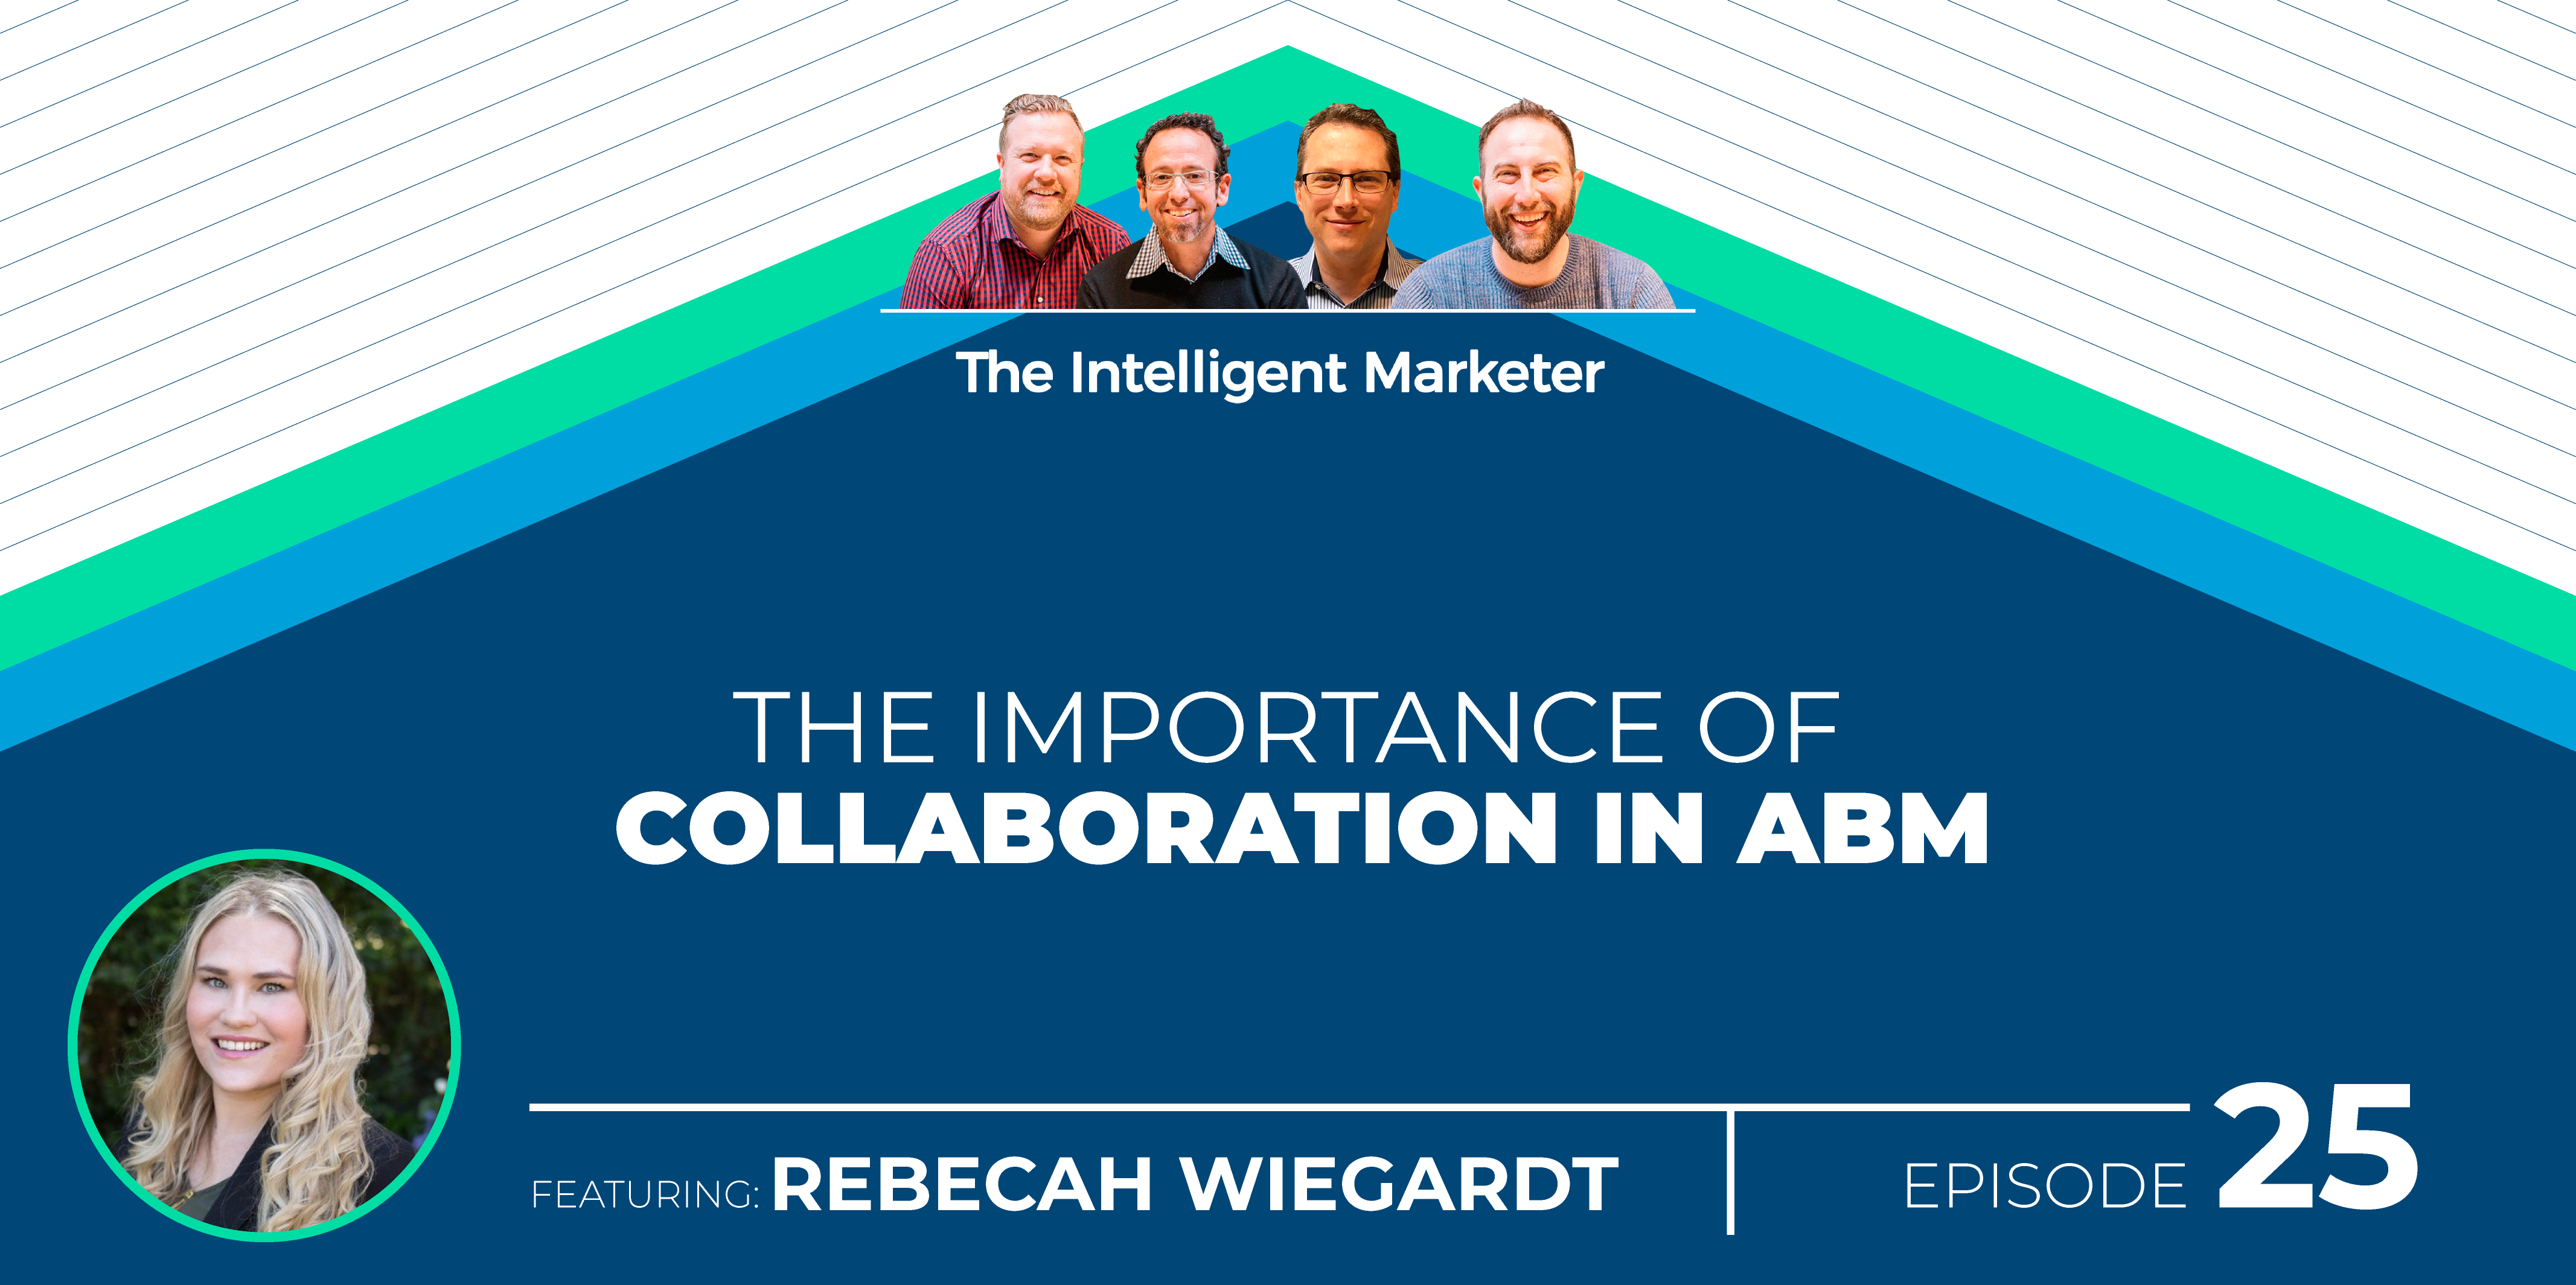 Intelligent Marketer Podcast Episode 25: The Importance of Collaboration in ABM with Rebecah Wiegardt